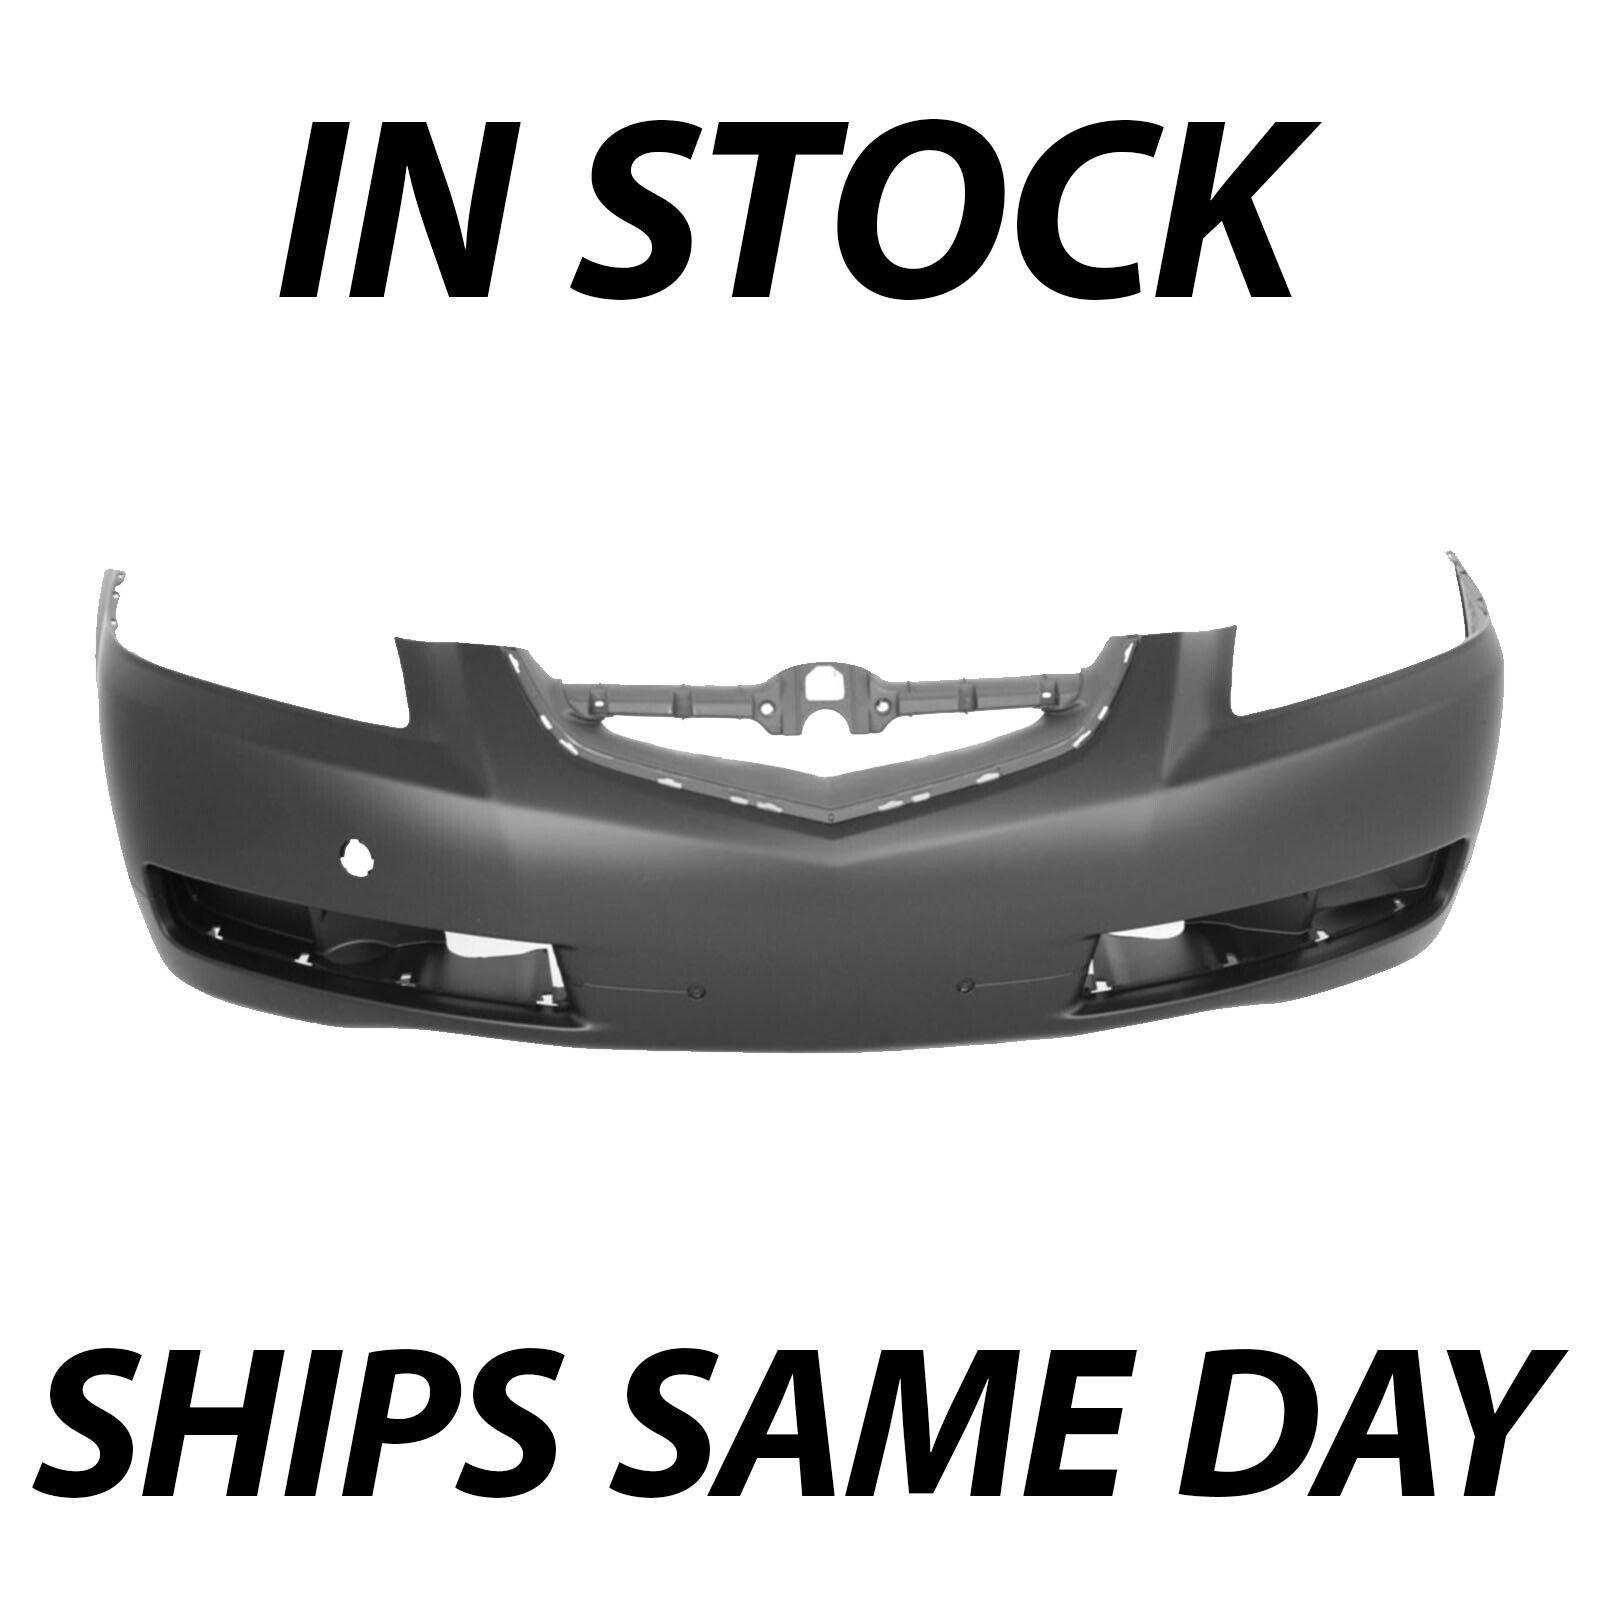 NEW PRIMERED Front Bumper Cover Fascia Replacement For - 2006 acura tl front bumper